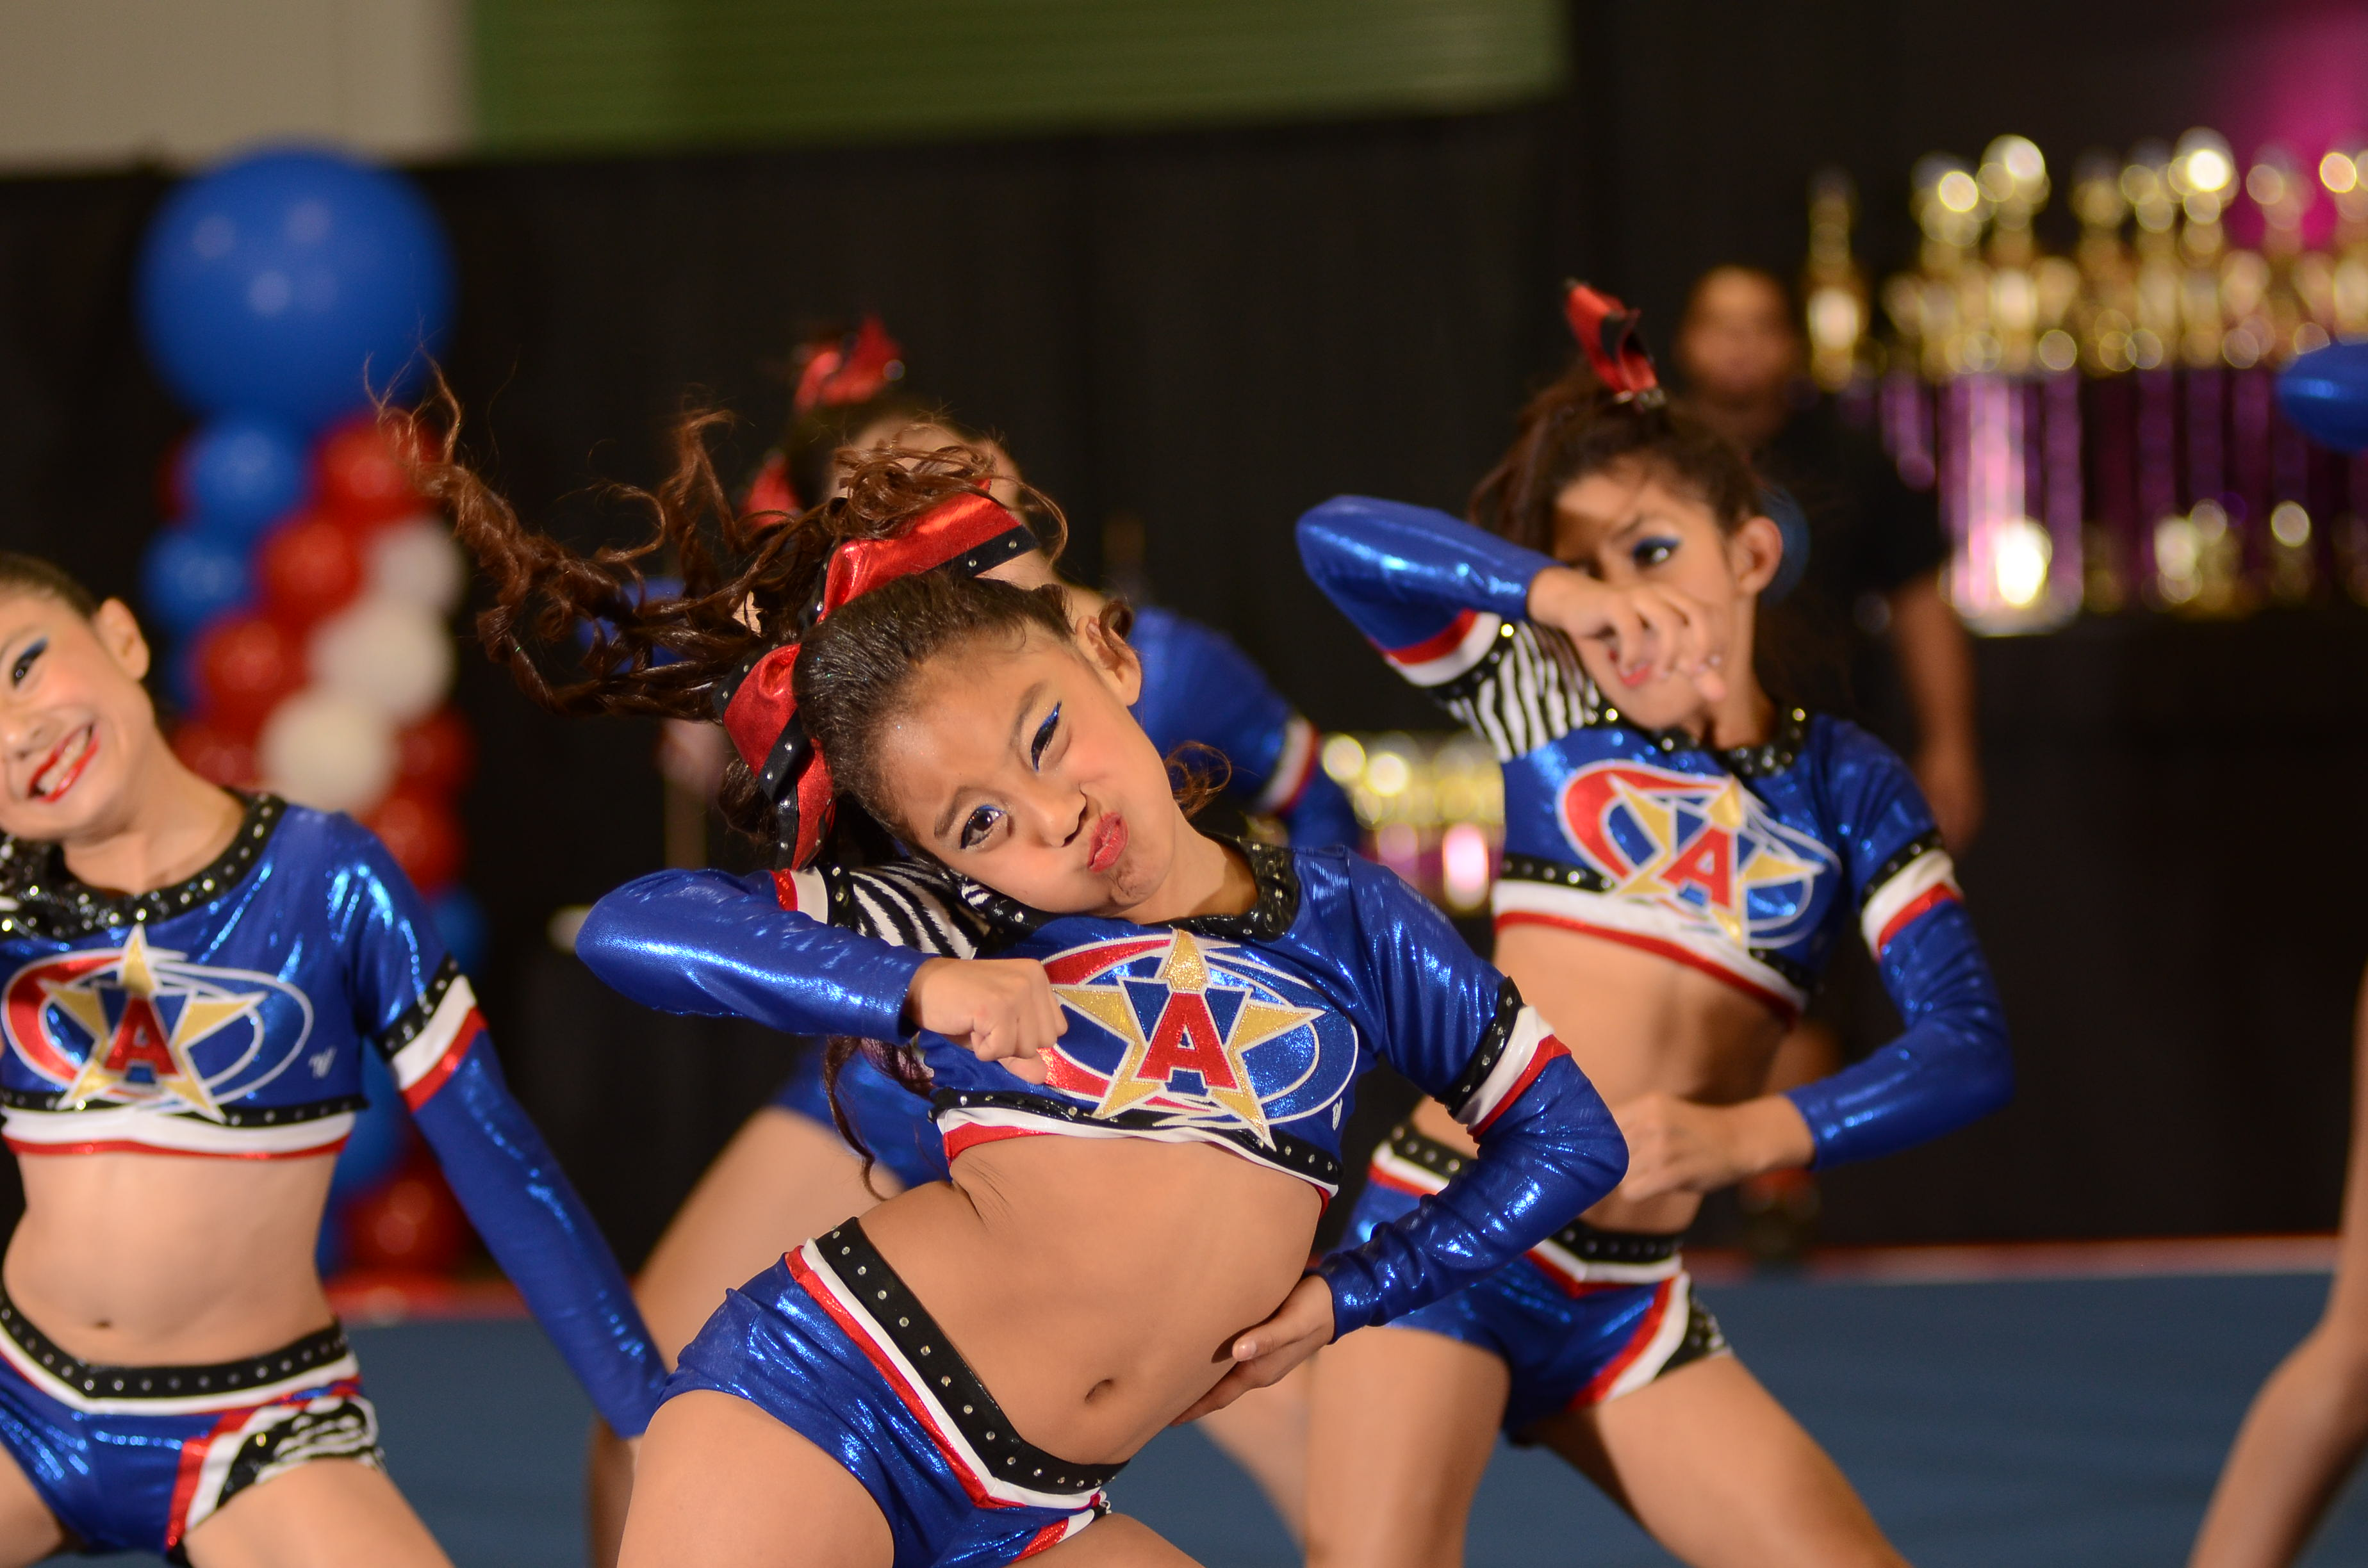 Fun Cheer 174 A Division Of Cheer Brands Inc